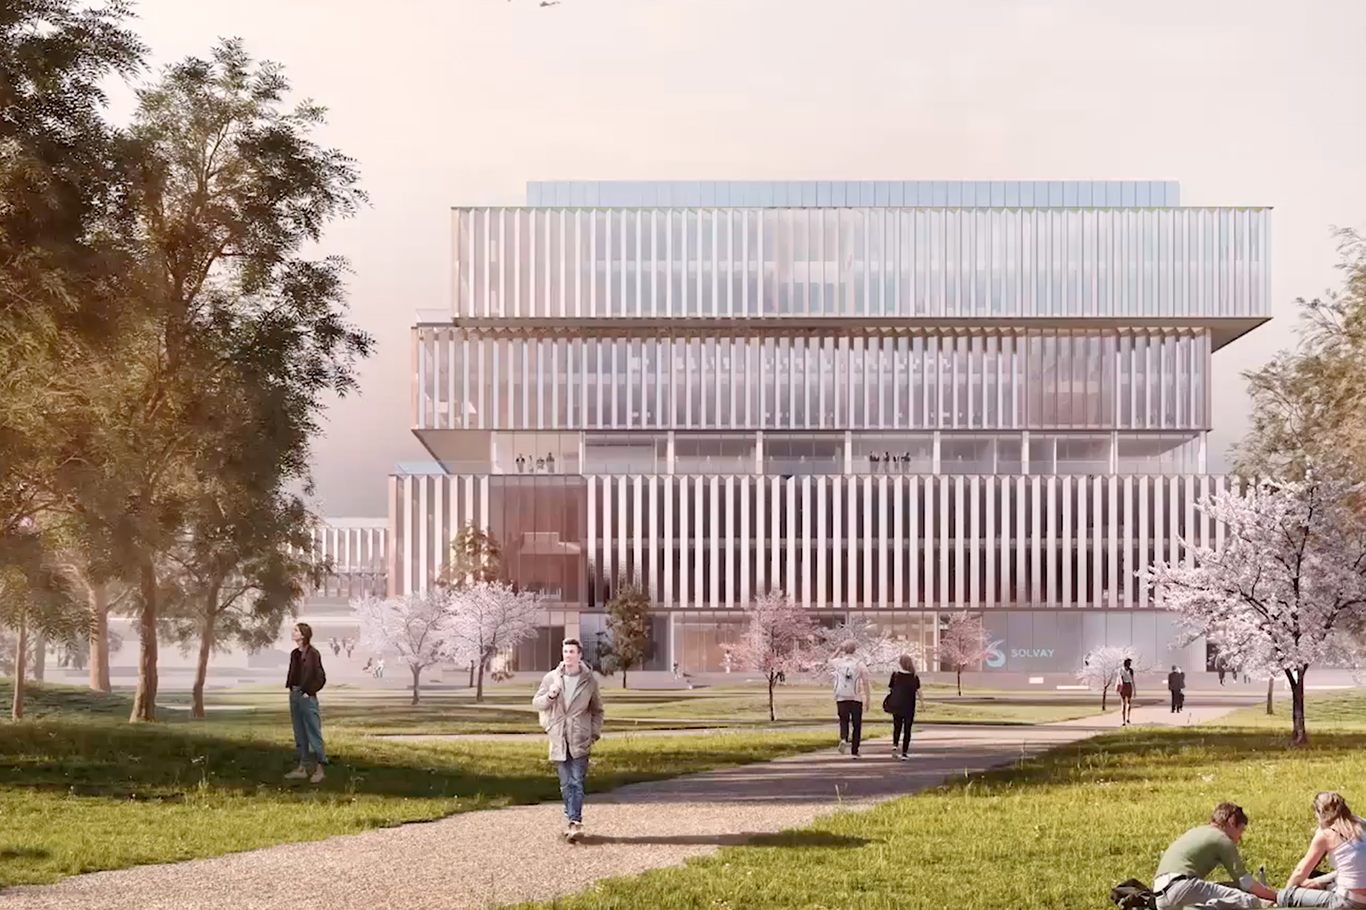 Solvay new headquarters project by Schmidt Hammer Lassen Architects